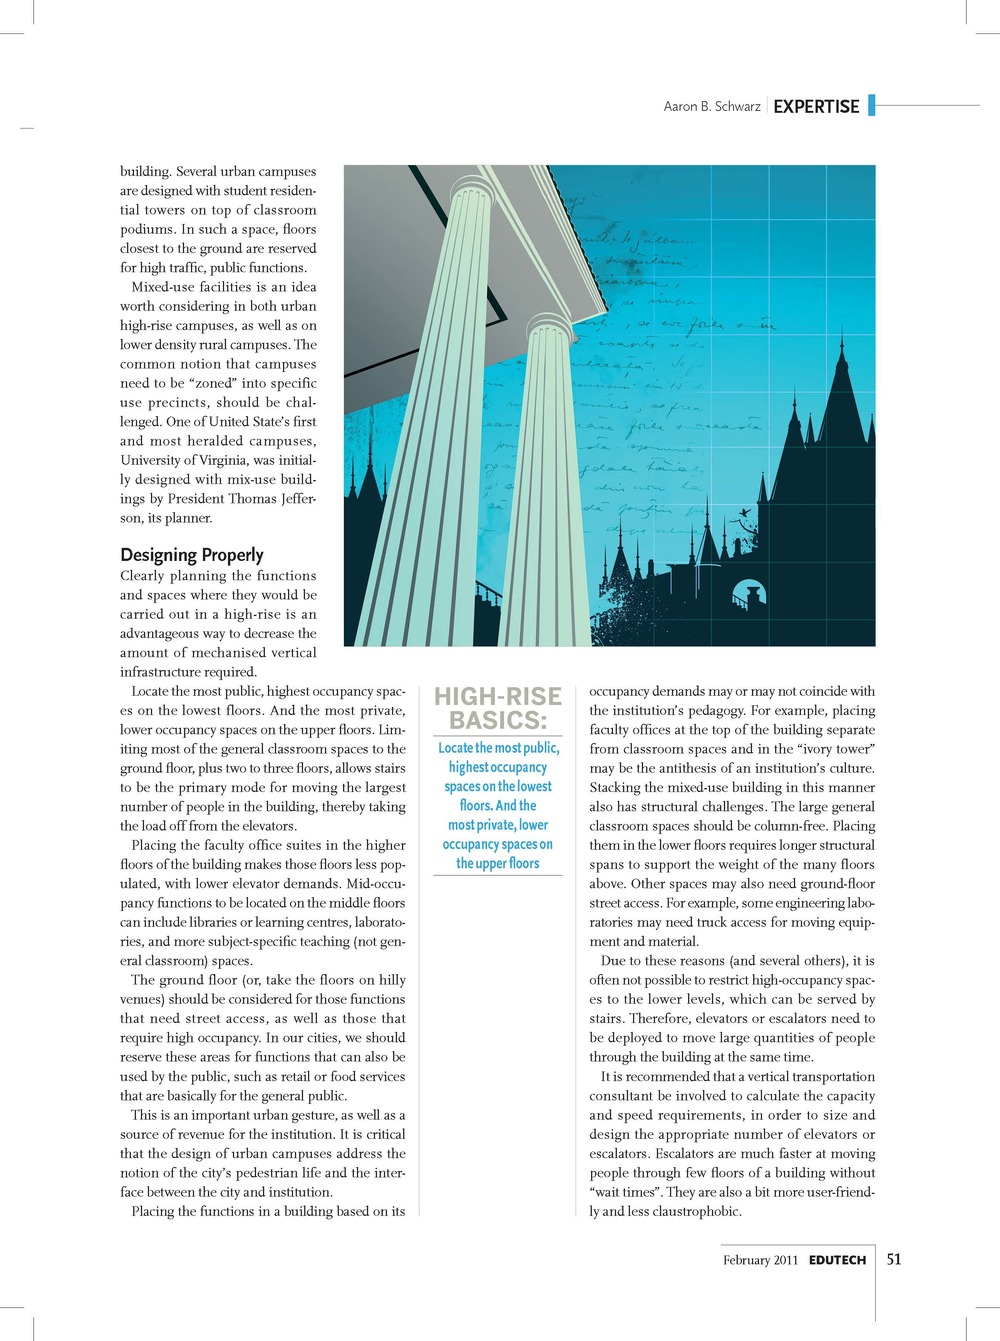 The biggest challenge is how to move students vertically through the building.  In the suburban or rural campuses, most classroom buildings are designed to two or three stories.  In this mode the students are moving about using the stair systems and they are not reliant on elevators or escalators.  Reliance on elevators and escalators come into play as soon as we begin to exceed three to four stories.  Elevators are in lower buildings, but their primary purpose and sizing is based on their use by the physically challenged and for service, not for moving large quantities of people quickly.